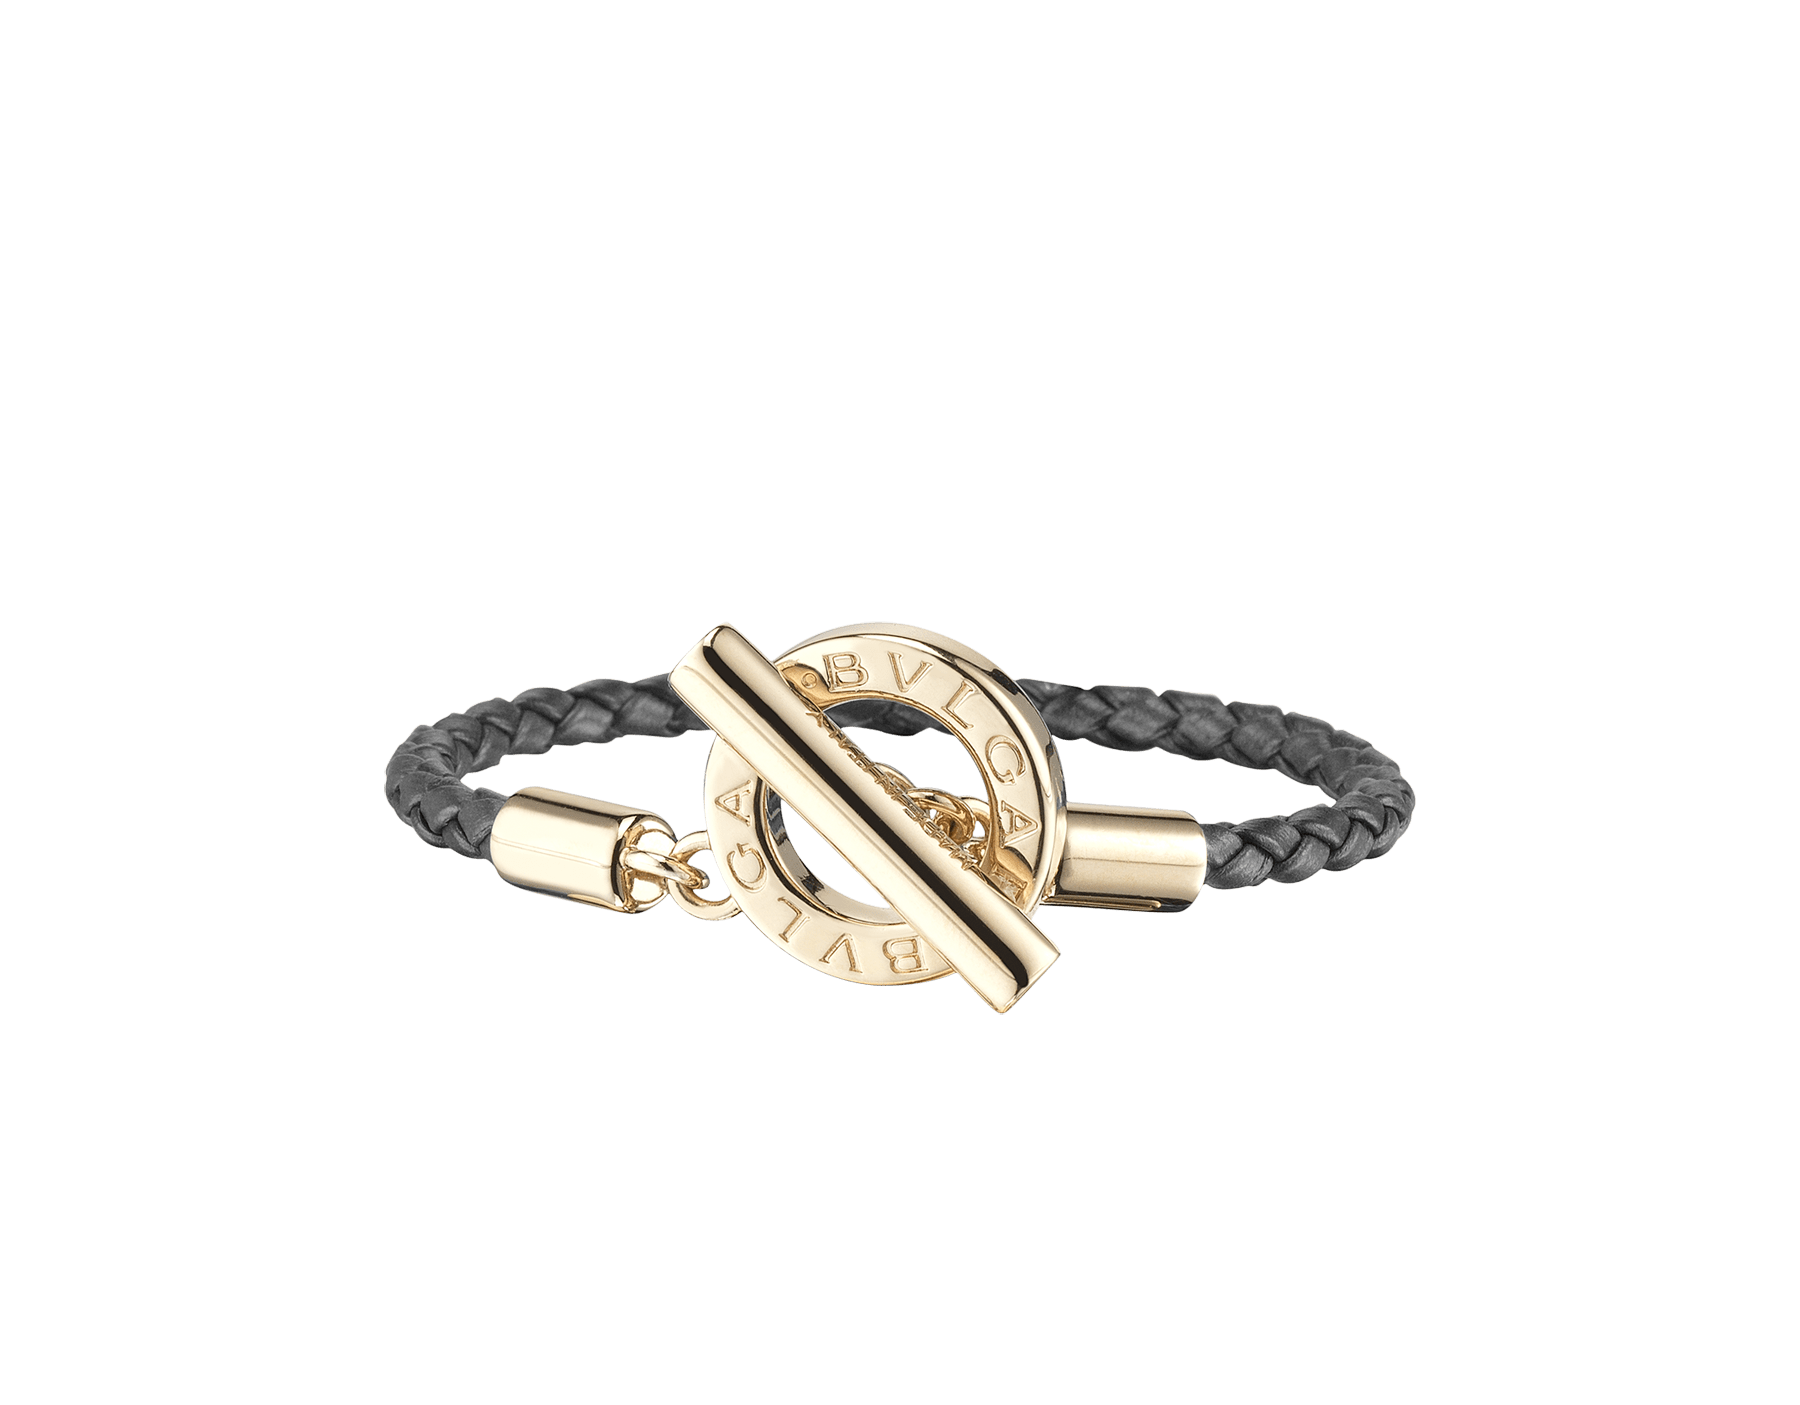 Bvlgari Bvlgari braid bracelet in black woven calf leather with an iconic iconic logo closure in light gold plated brass. BBClasp-WCL-B image 1